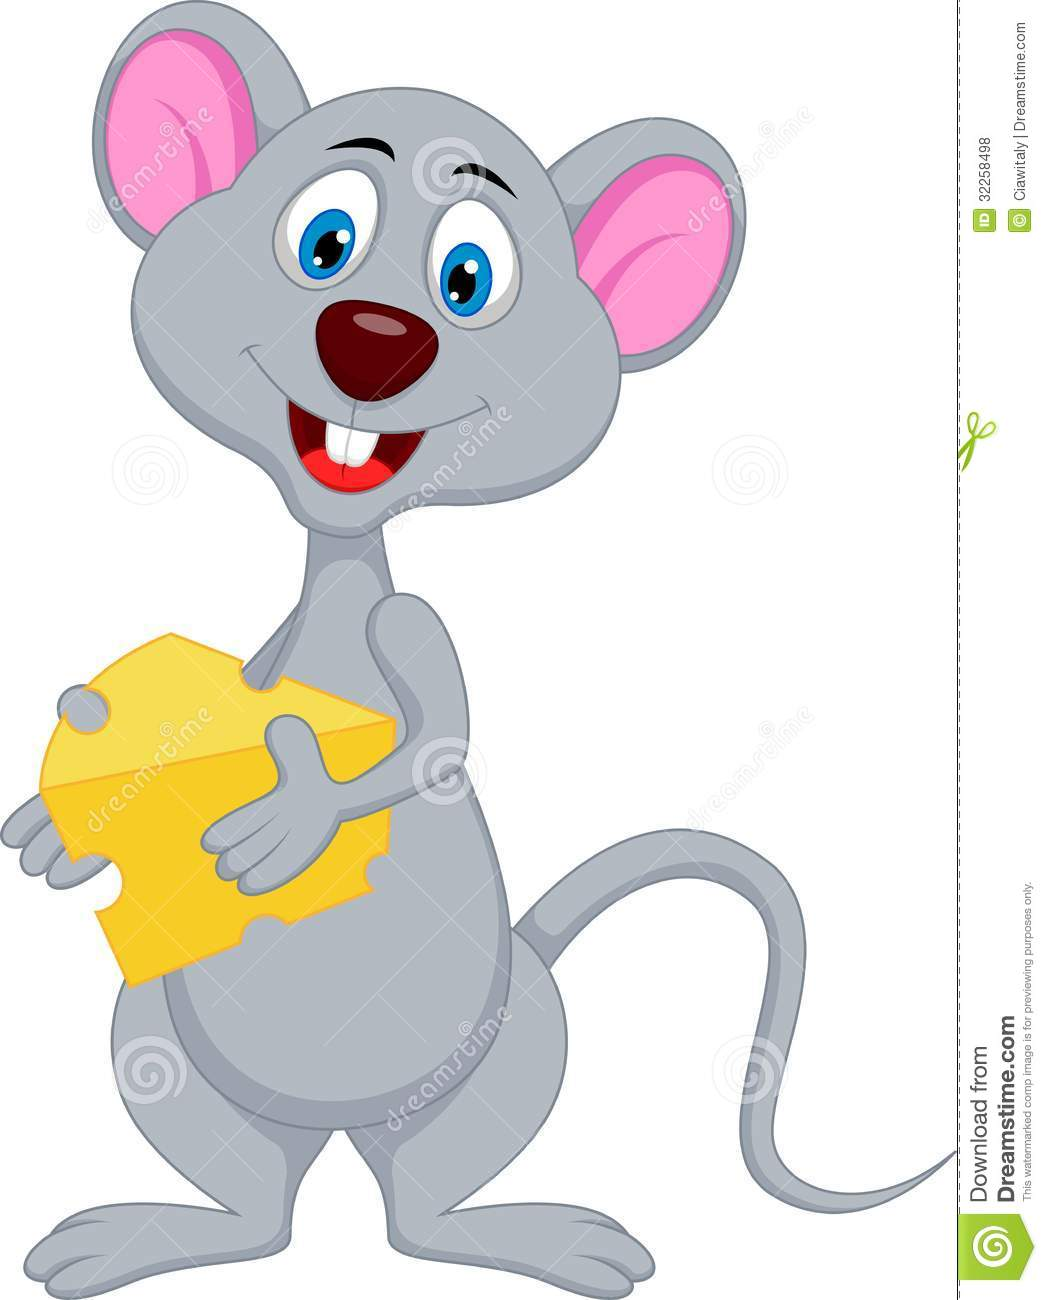 Funny Mouse Cartoon Holding Cheese Stock Vector ...